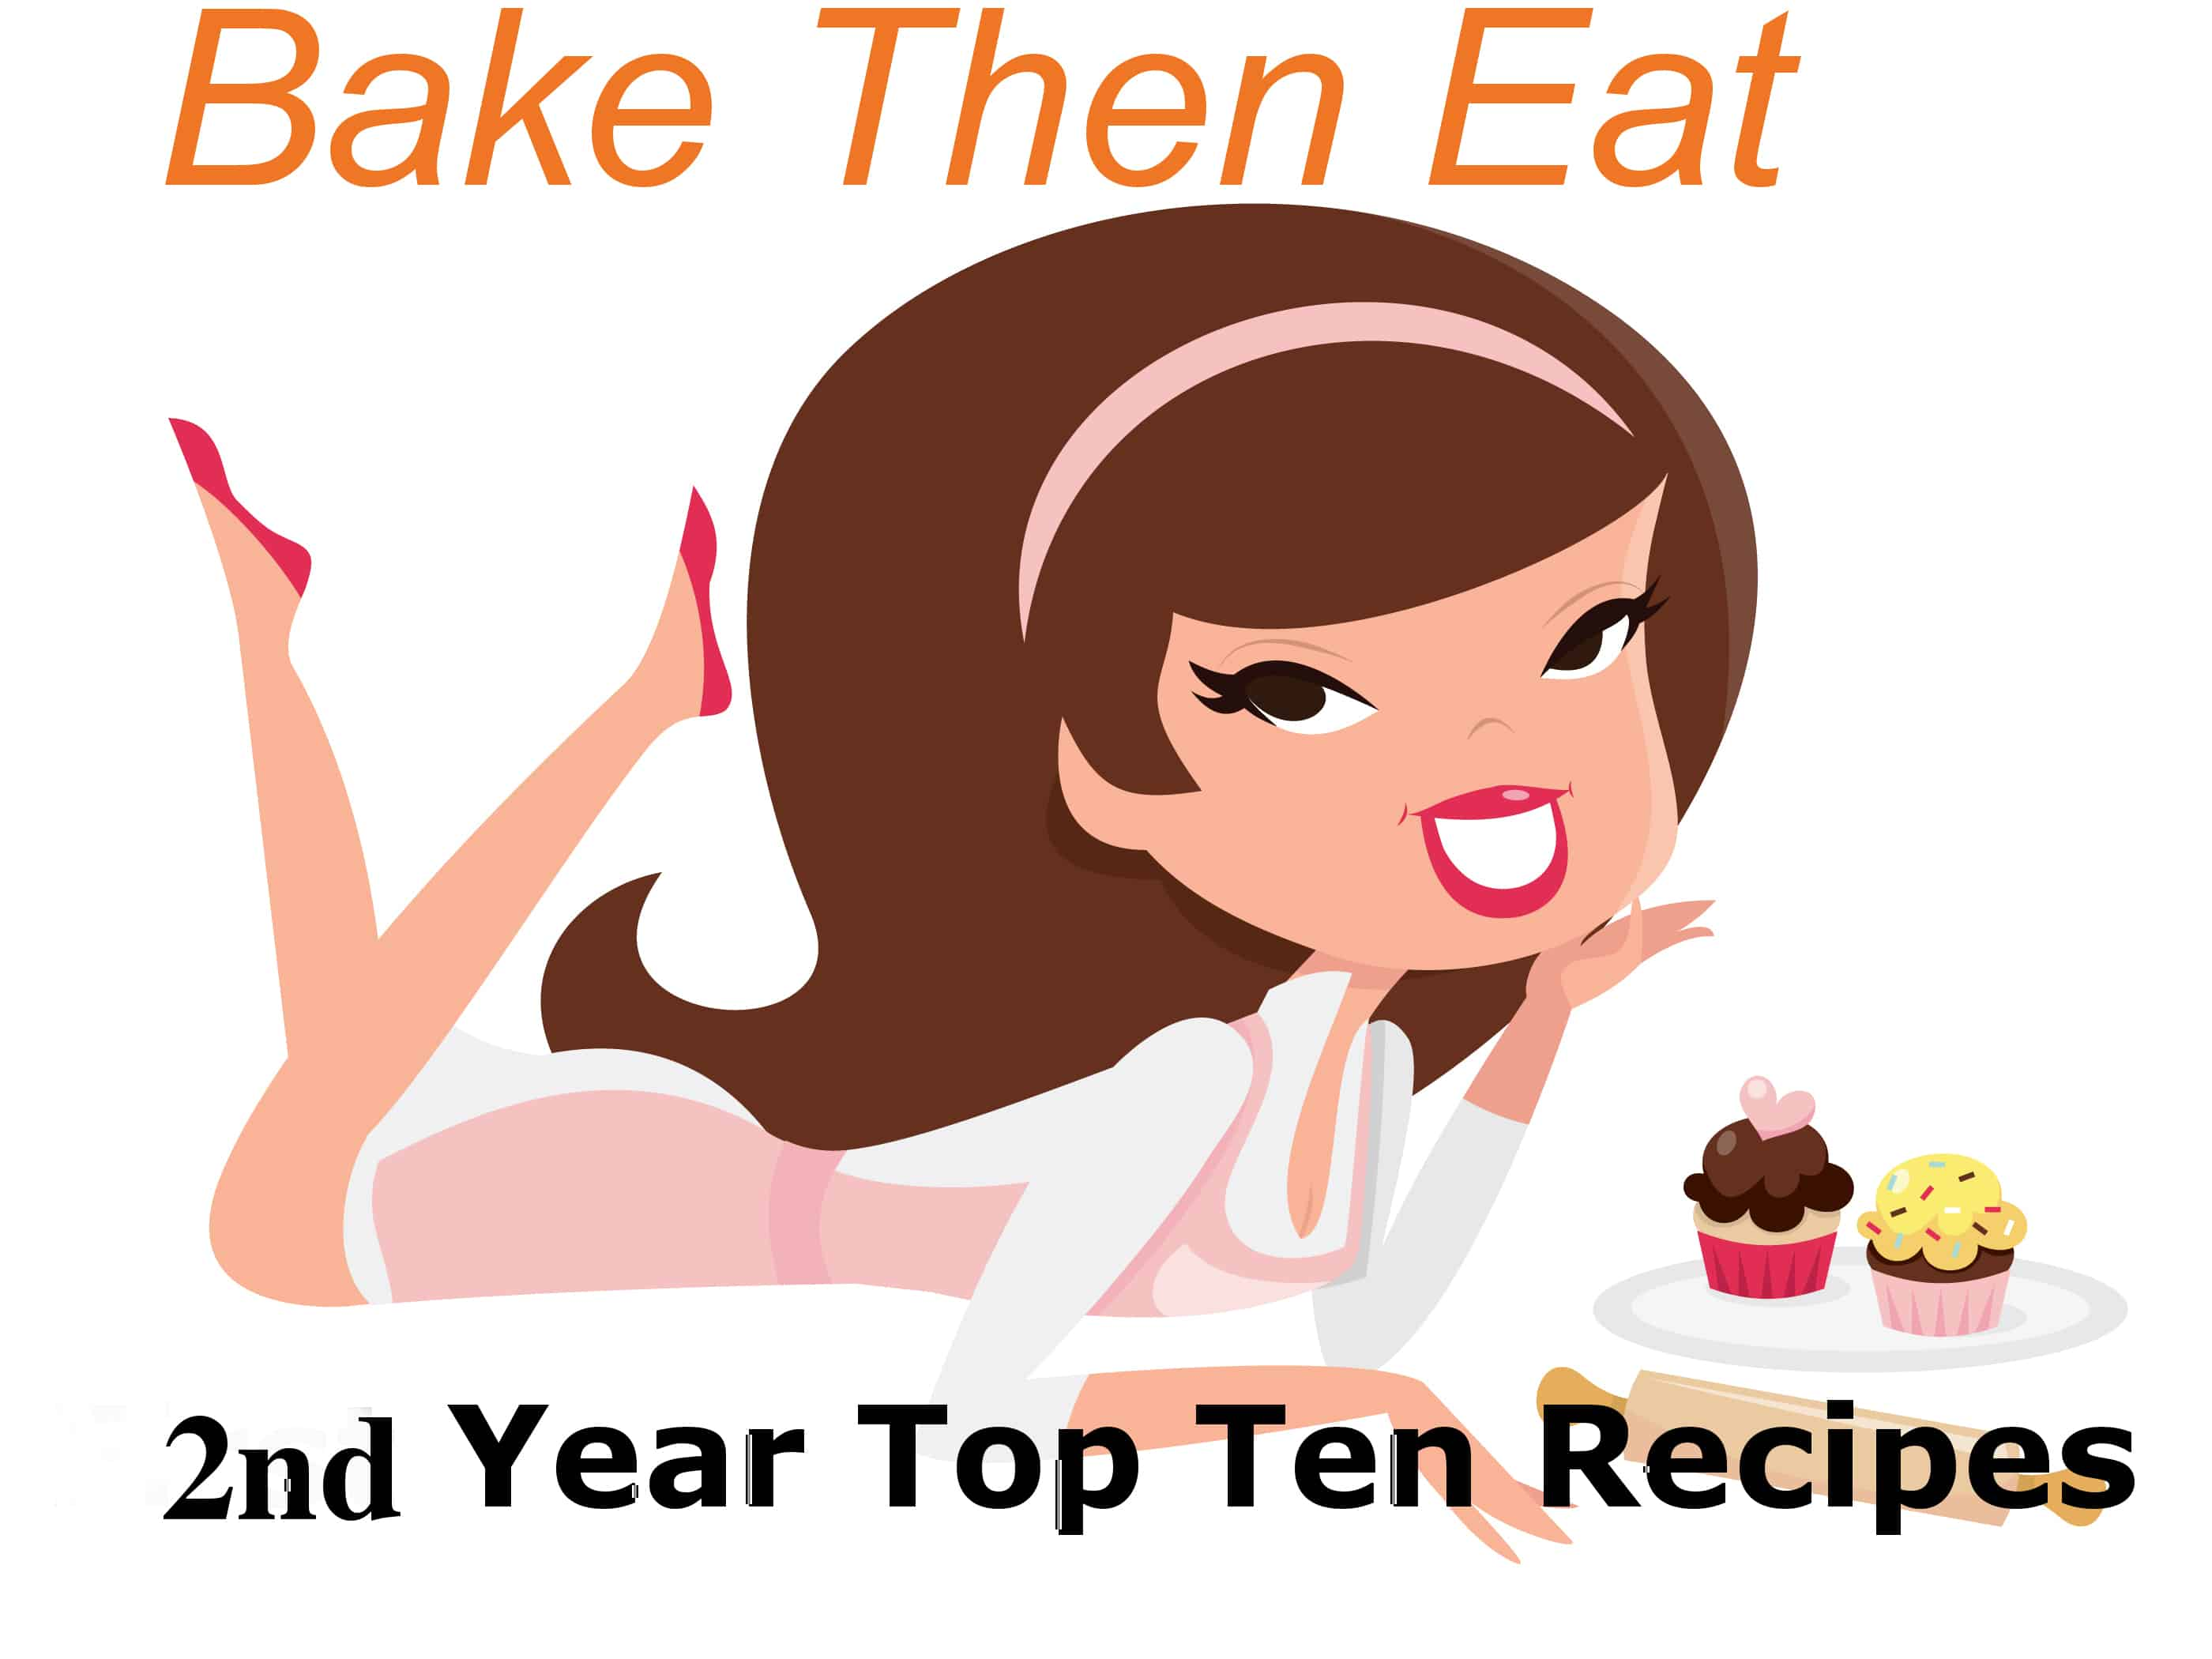 second year top ten recipes